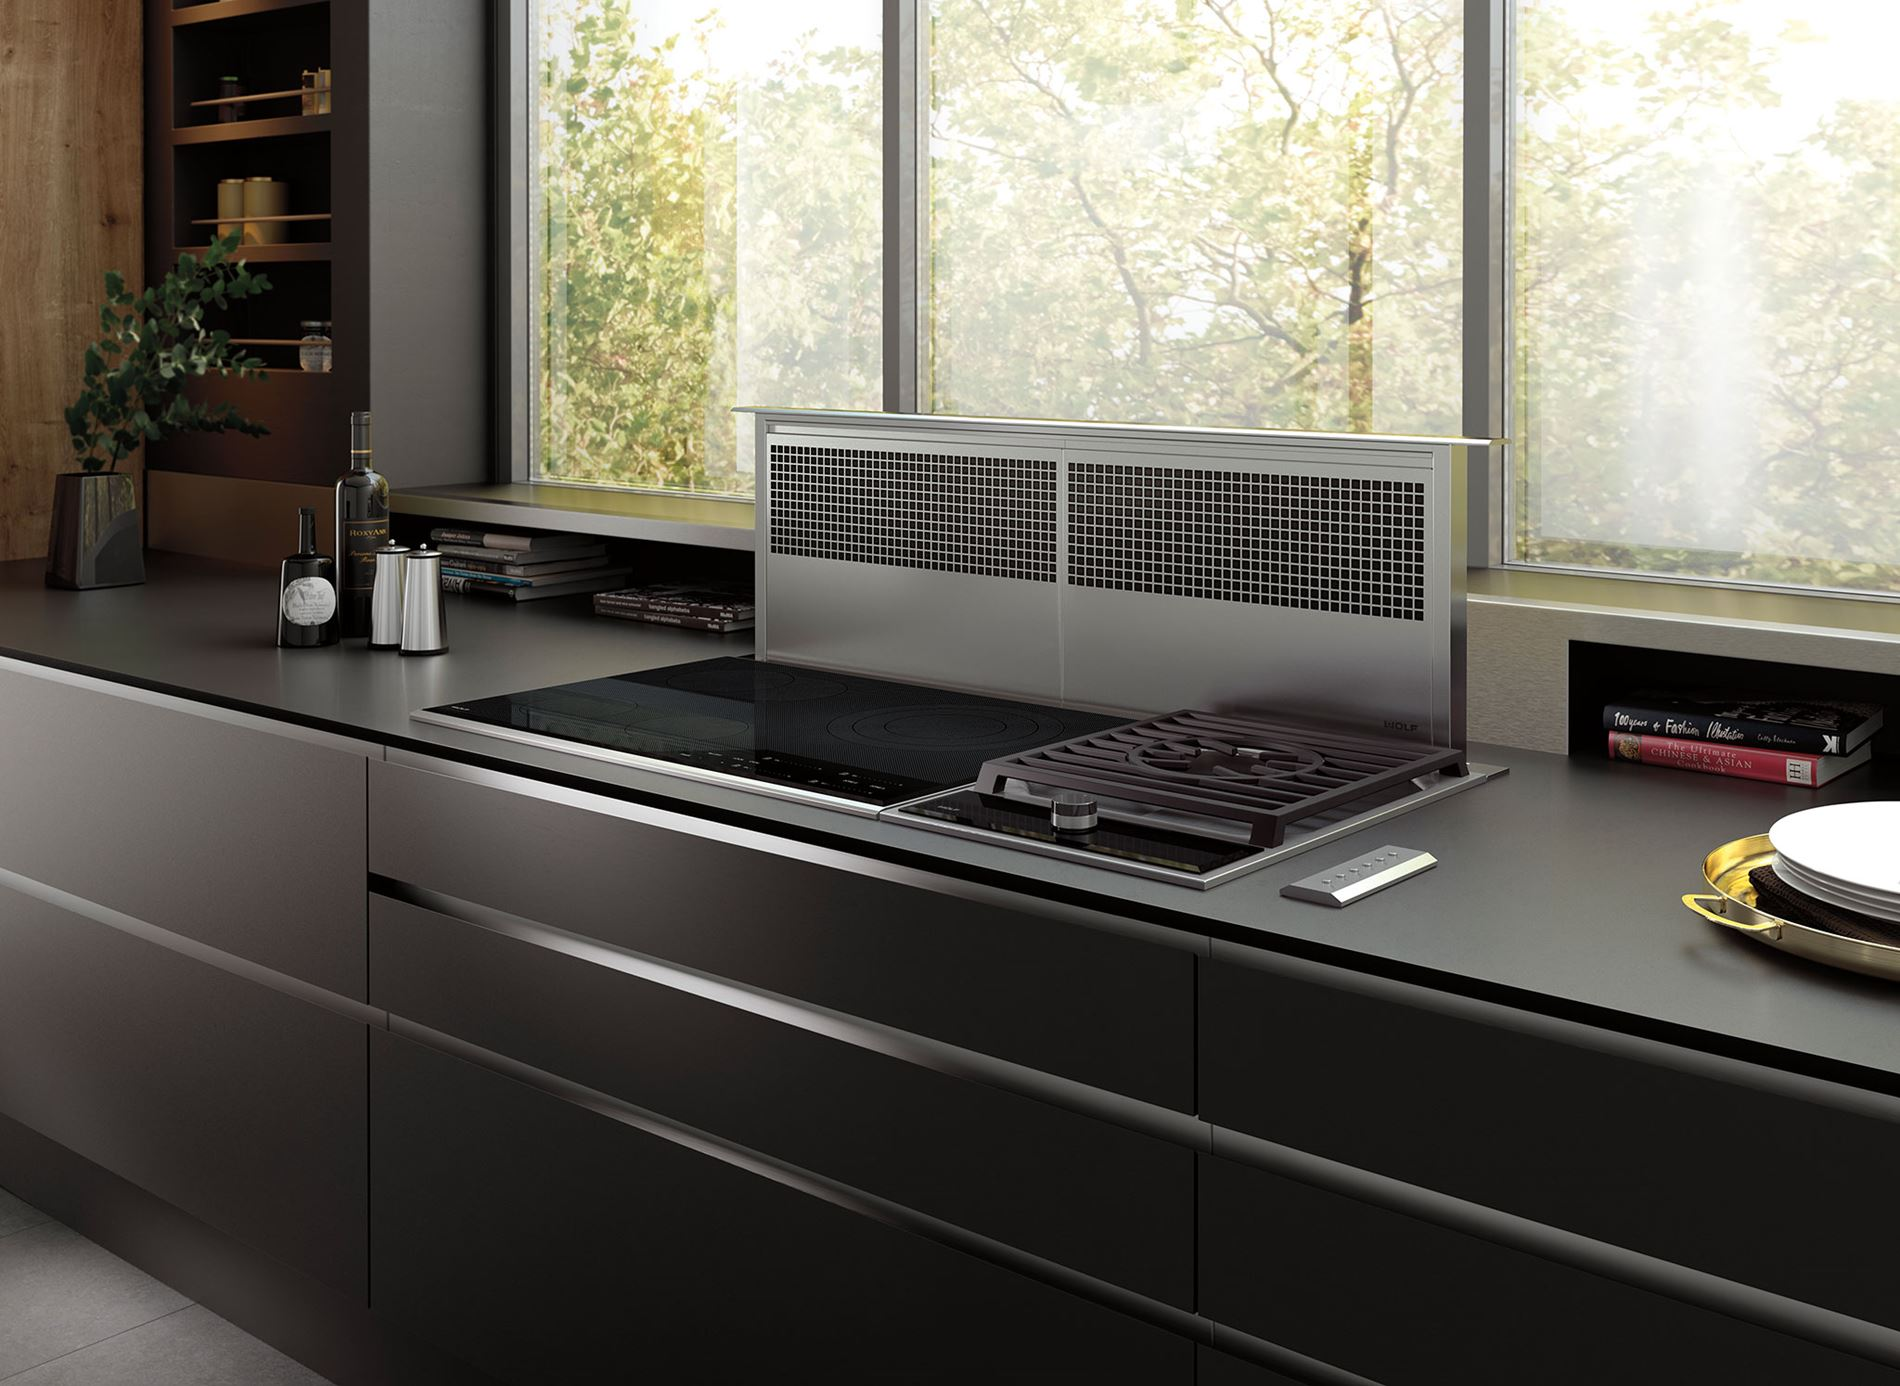 Modular cooking with downdraft